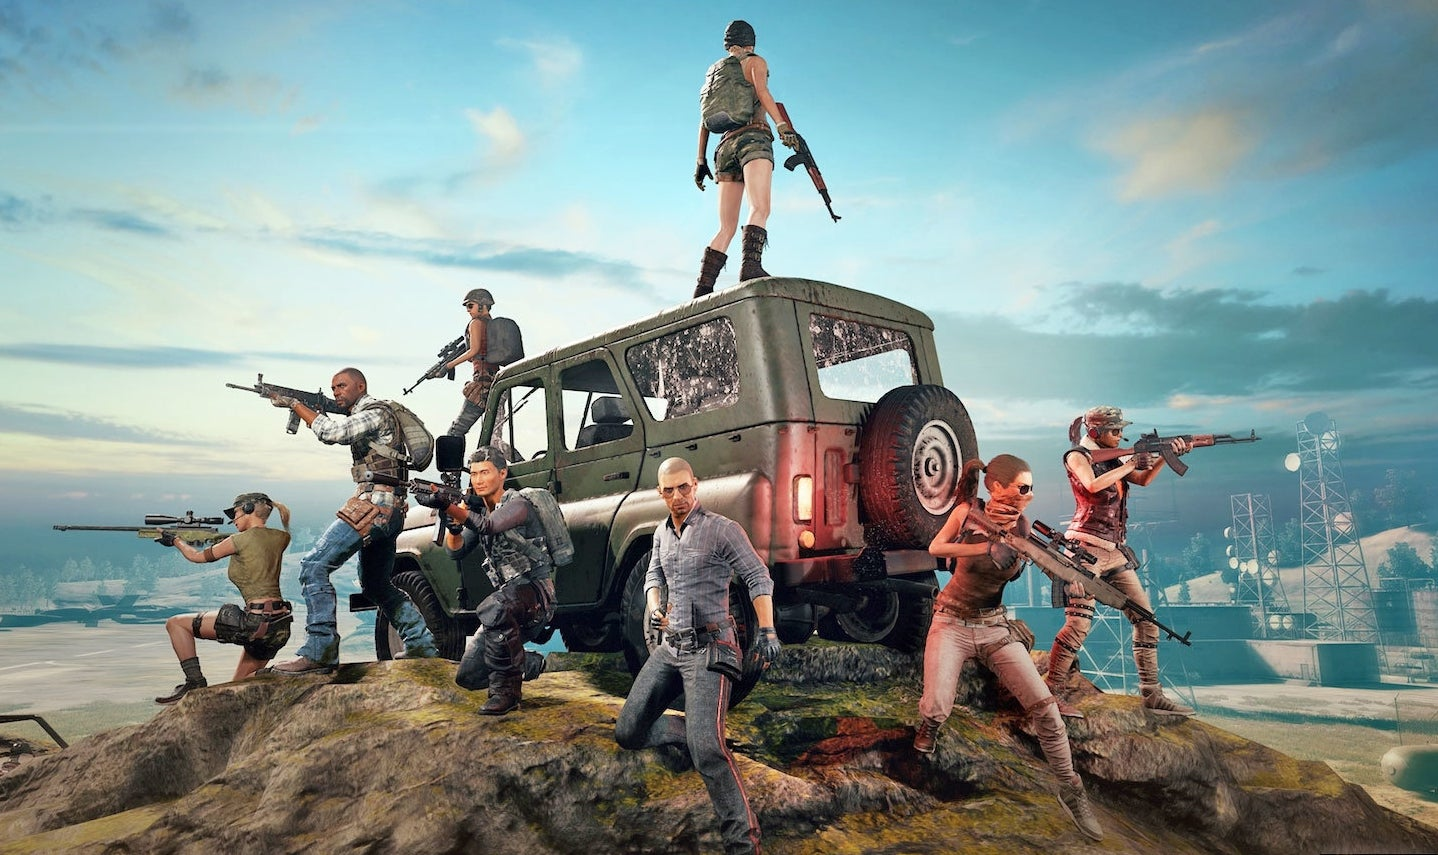 PlayerUnknown's Battlegrounds Un-Banned In Nepal, For Now